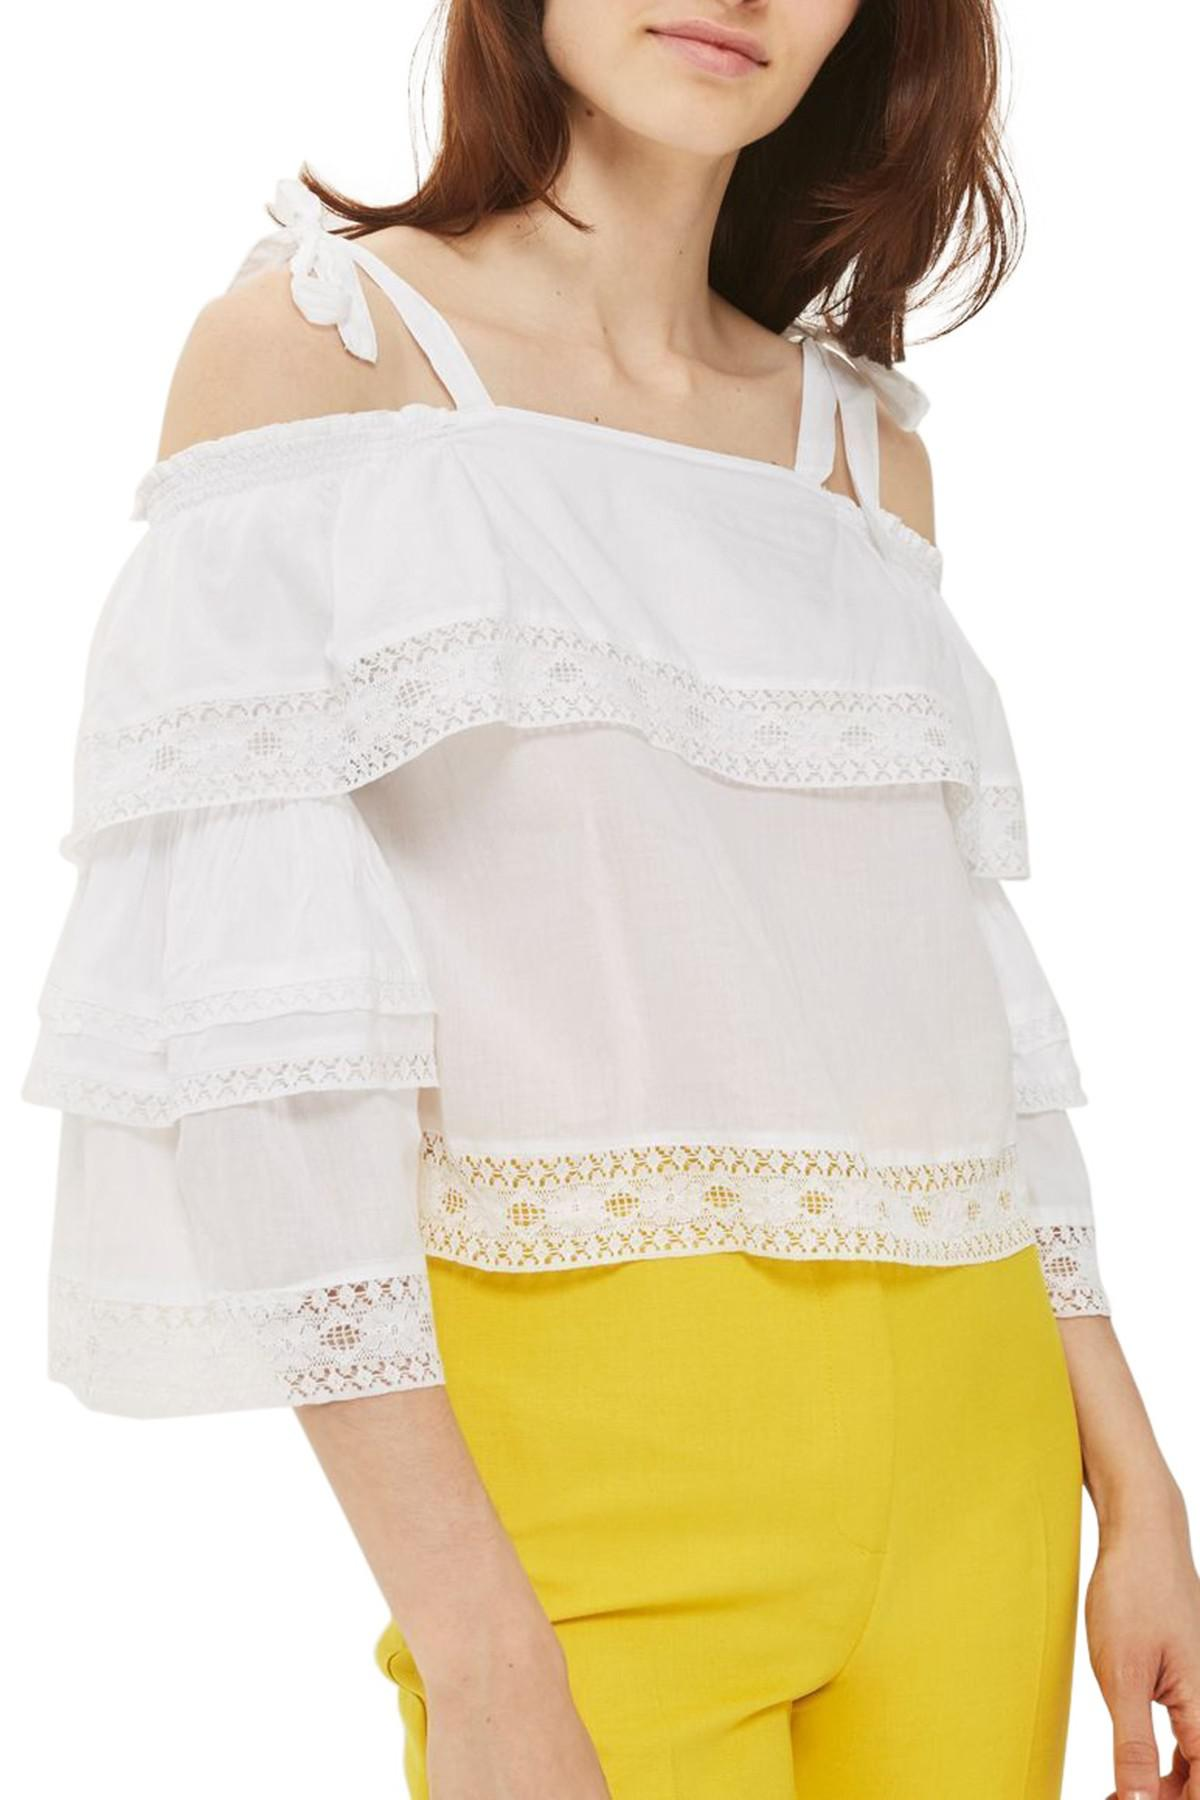 48f107ab9e40a Lyst - TOPSHOP Lace Trim Off The Shoulder Top in White